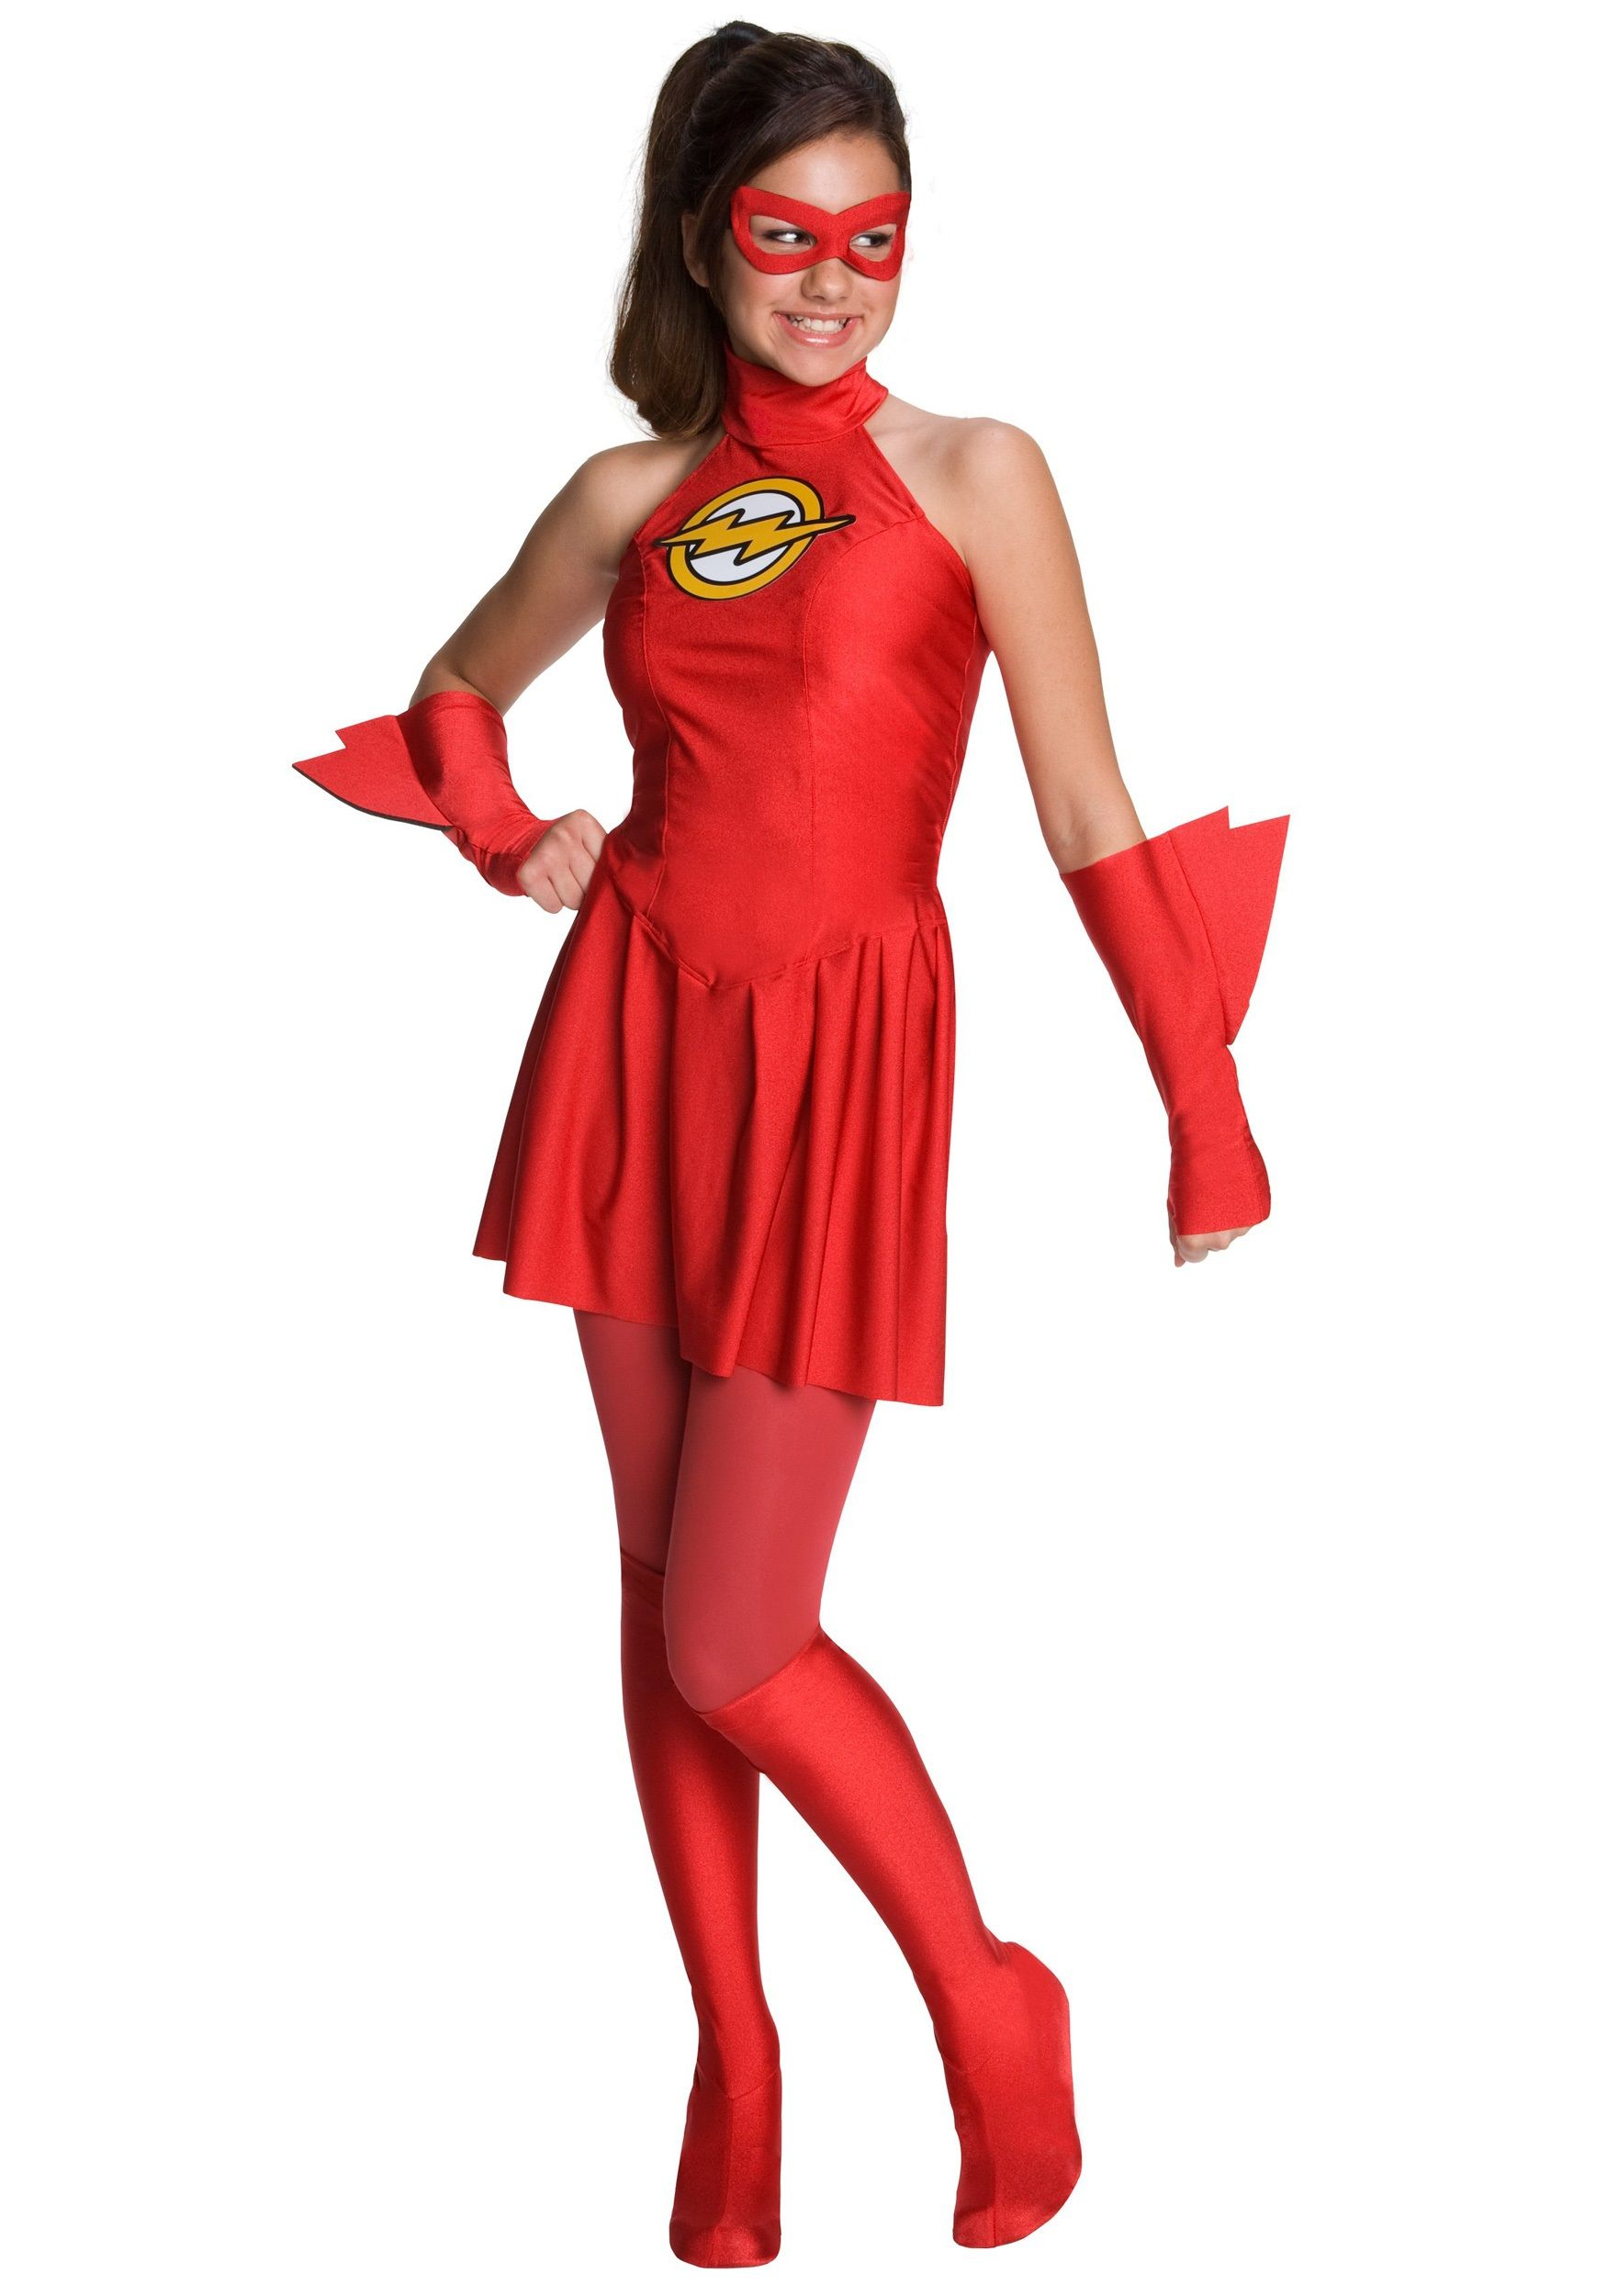 female superhero costumes for kids | ... Costume Ideas Superhero Costumes Flash Costumes Kids Female Flash  sc 1 st  Pinterest & female superhero costumes for kids | ... Costume Ideas Superhero ...